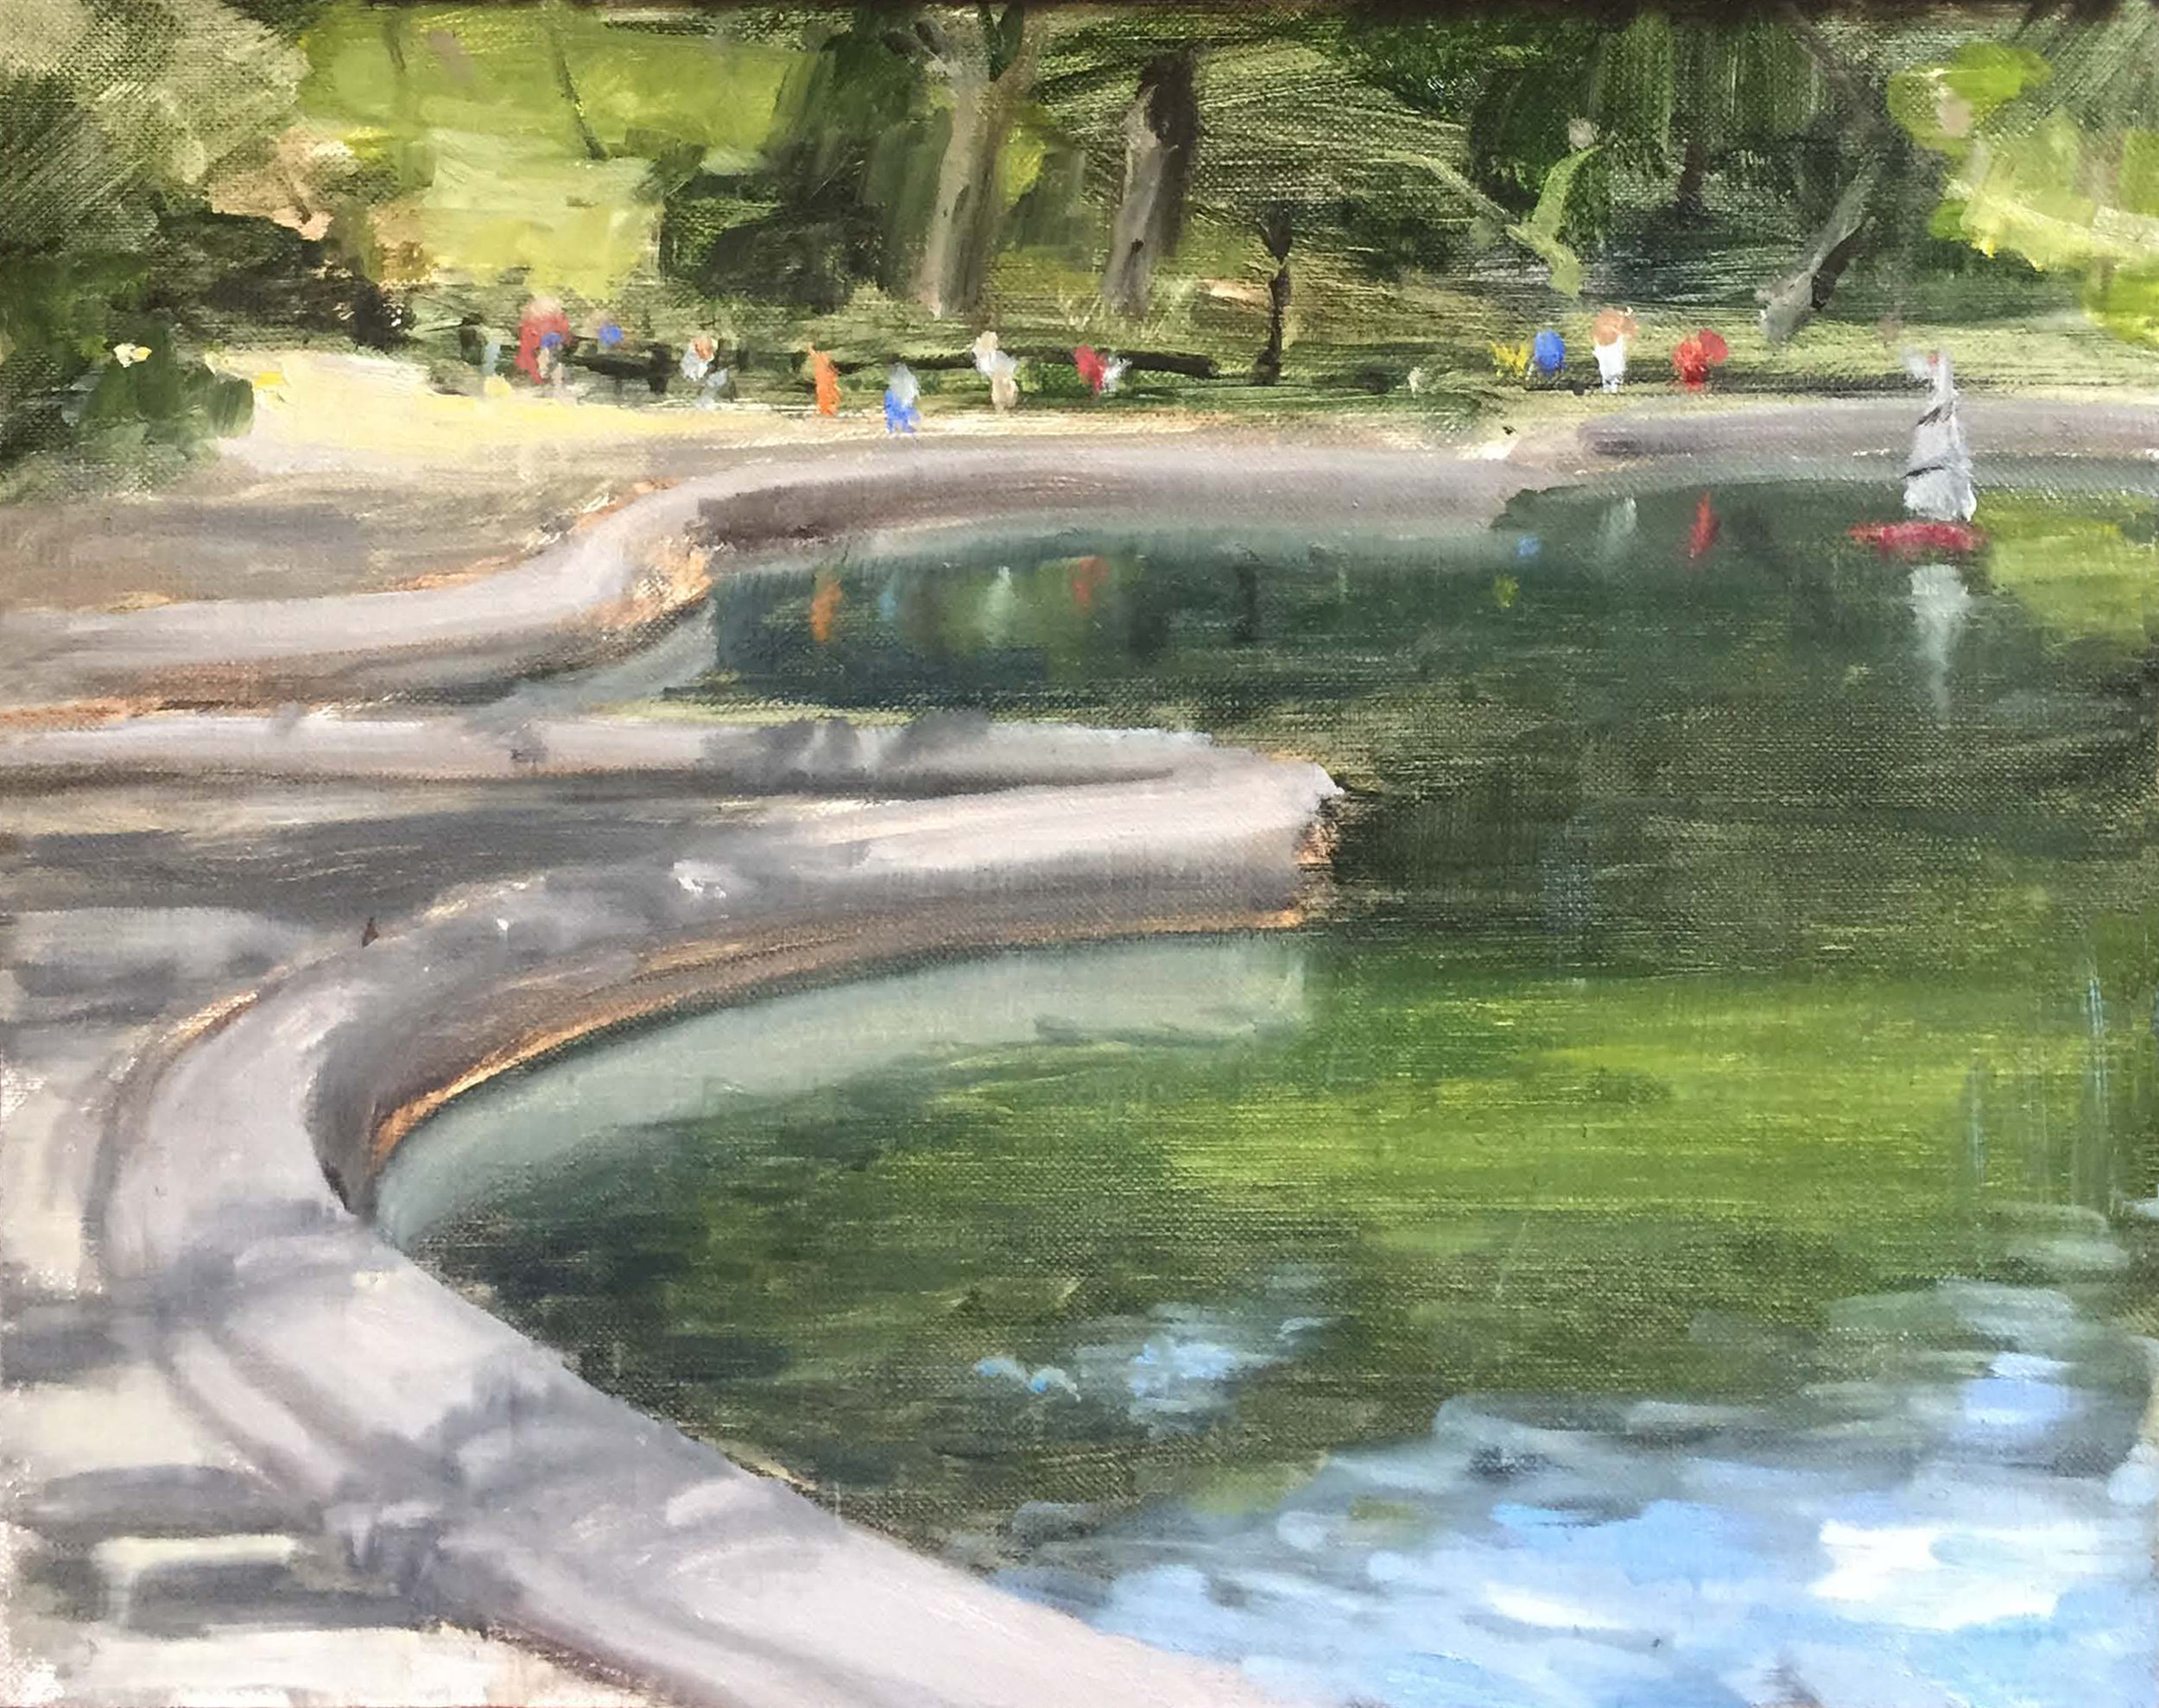 """""""VIEW AT THE BOATPOND,, CENTRAL PARK, NYC""""  oil on linen 